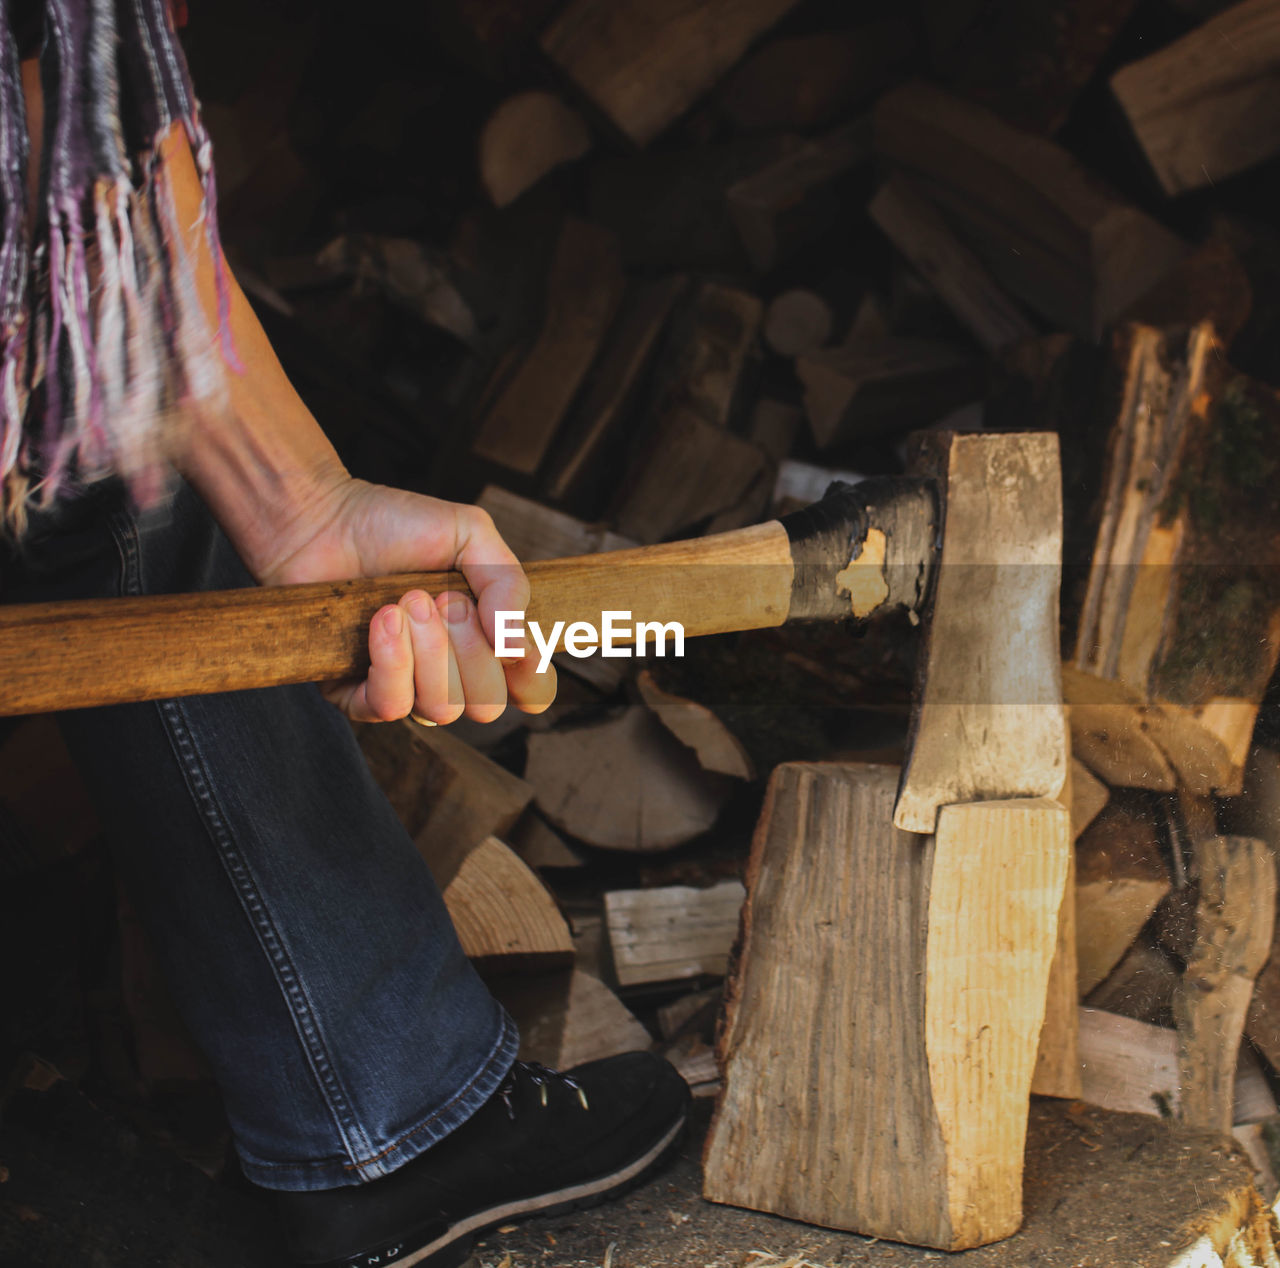 wood - material, real people, wood, one person, log, timber, men, axe, firewood, human hand, holding, occupation, hand, human body part, work tool, deforestation, indoors, lifestyles, workshop, hand saw